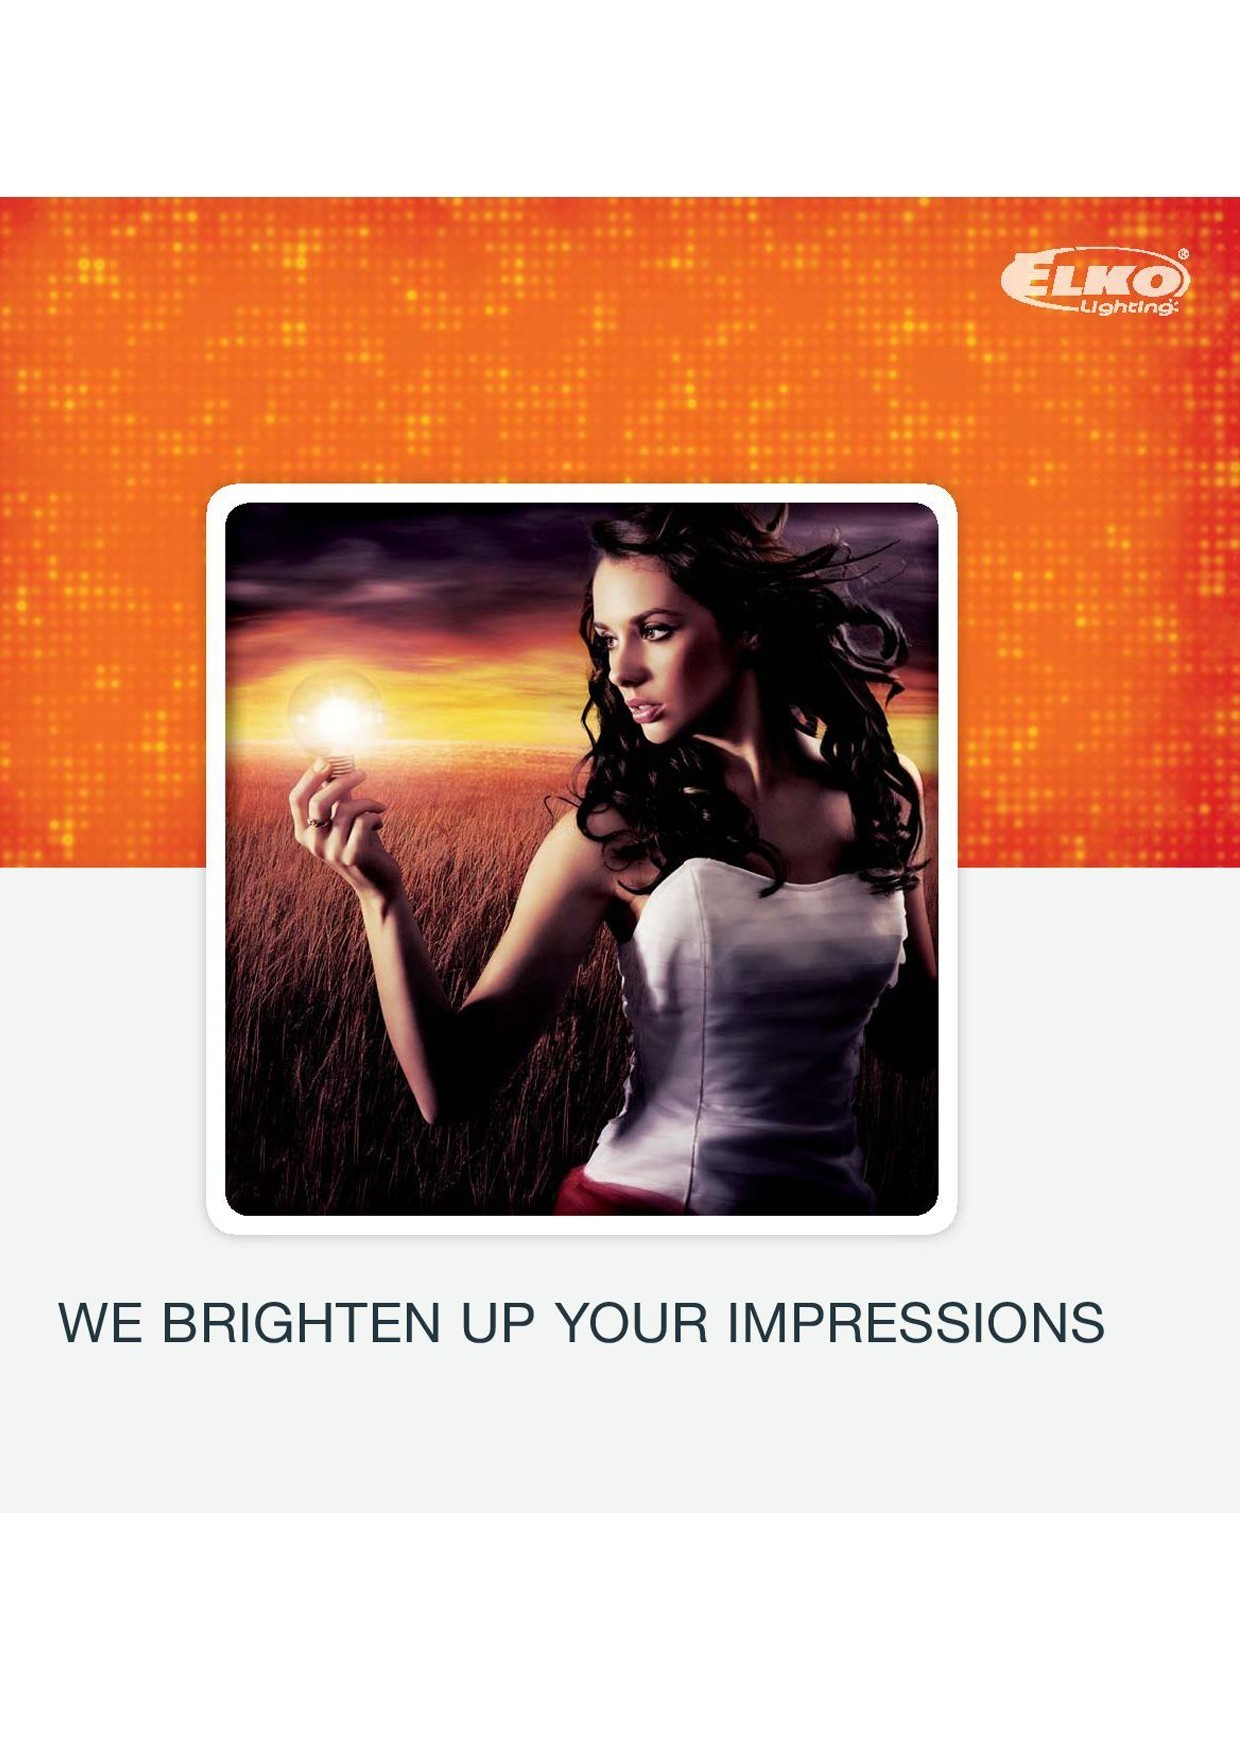 LIGHTING - We brighten up your impressions preview